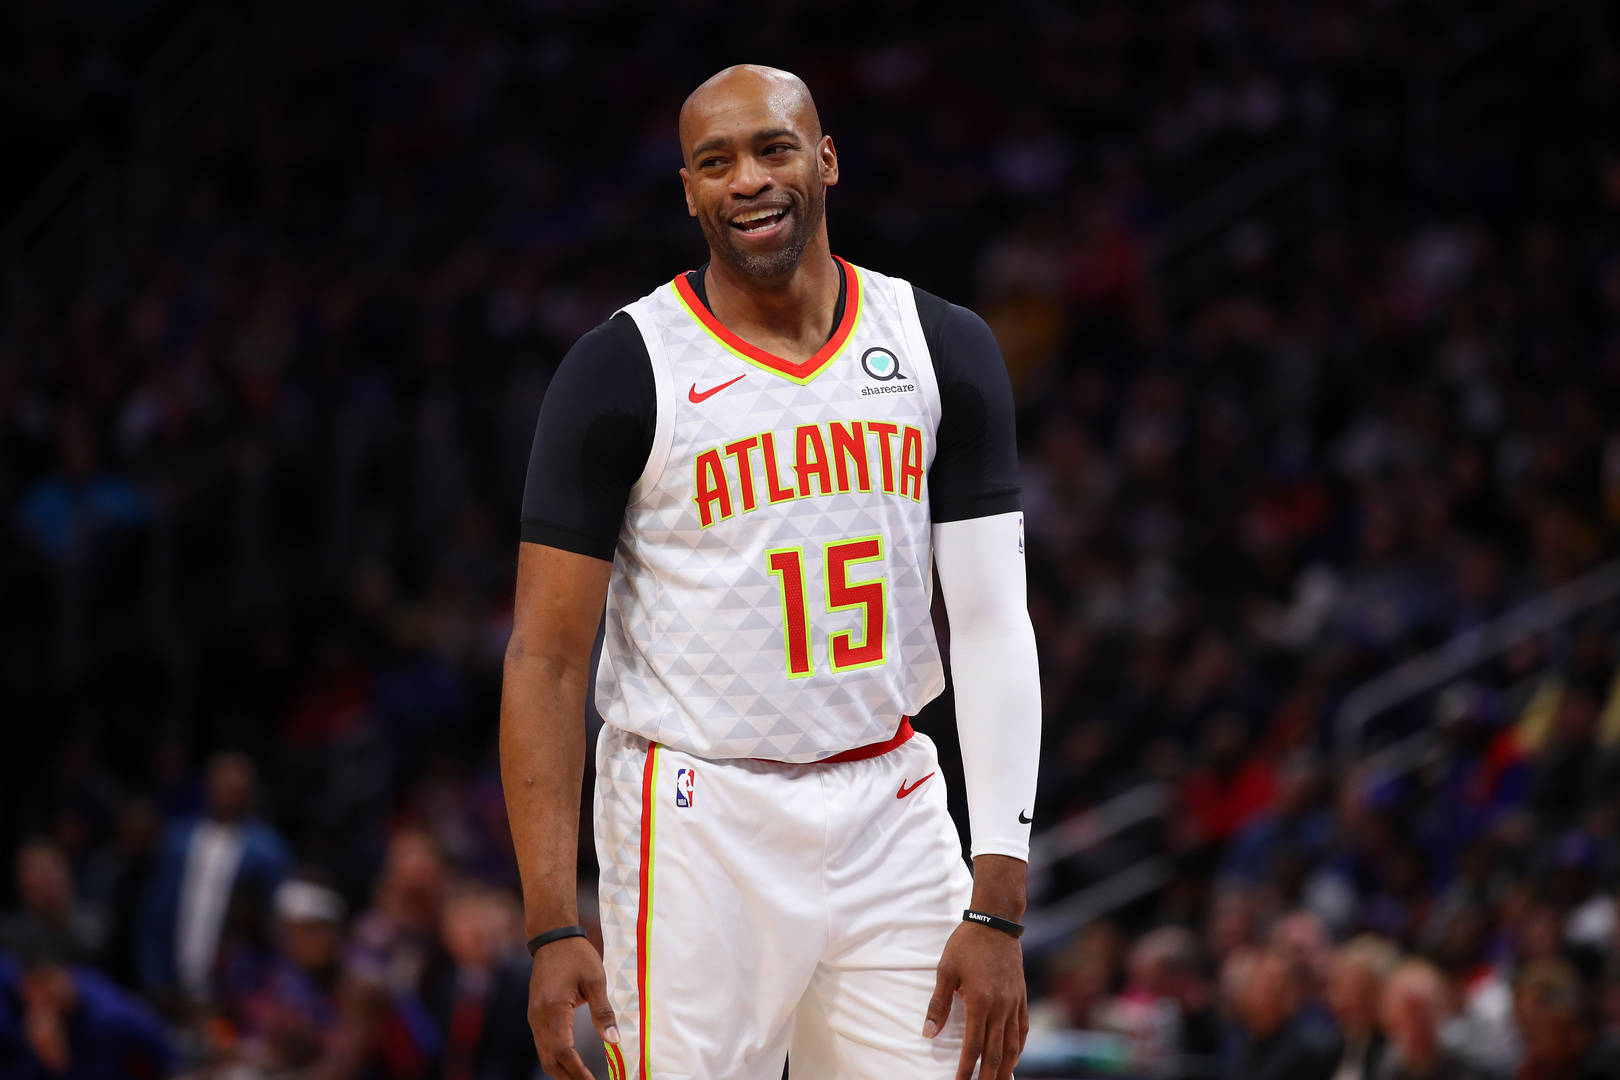 NBA Veteran Vince Carter Becomes First In The League To Play In Four Different Decades